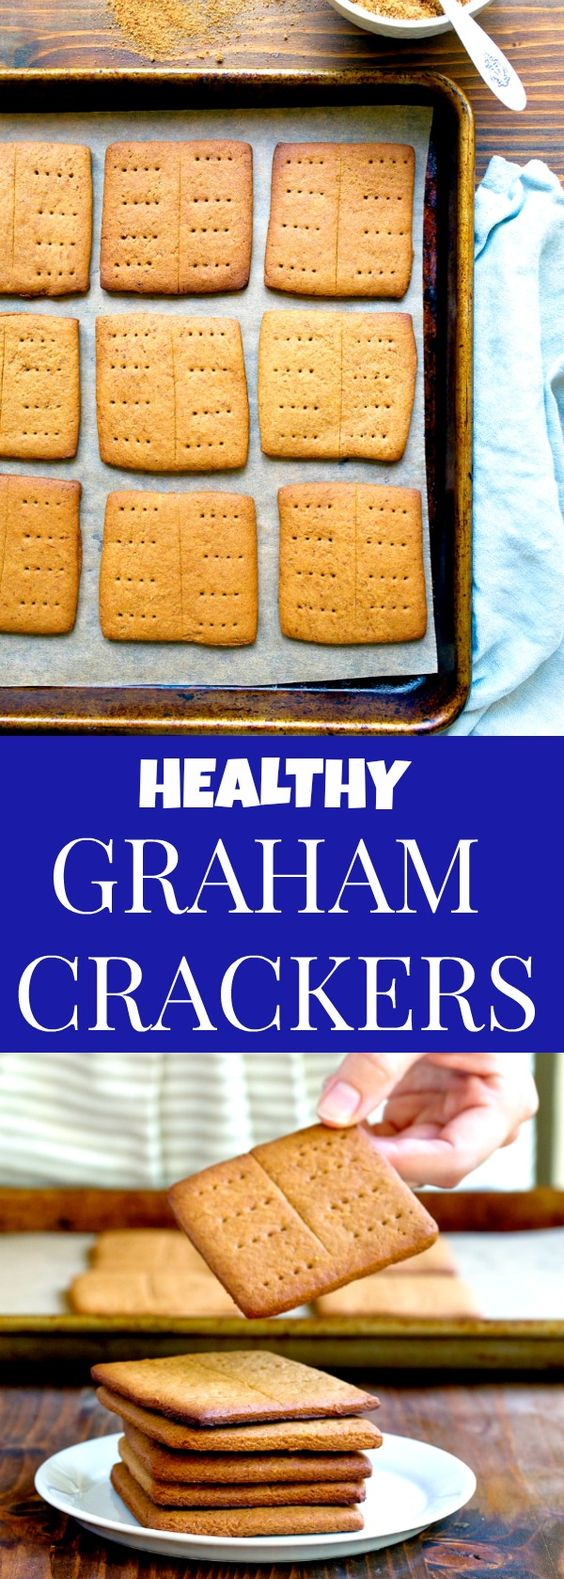 Healthy homemade graham crackers that are refined sugar free! Naturally sweetened with coconut sugar and honey, making them the perfect baby food for a teething baby.